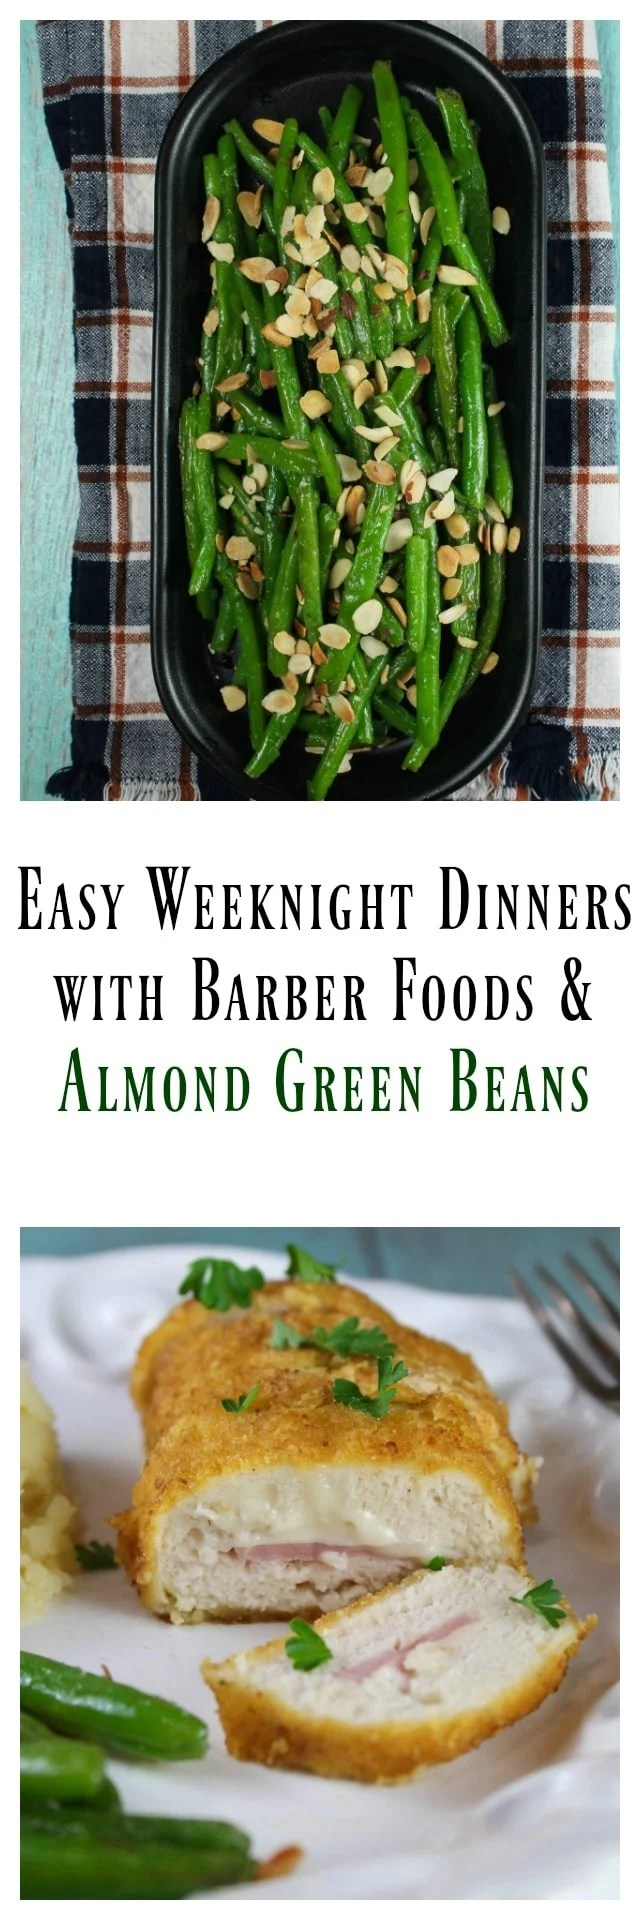 Easy weeknight dinners with Barber Foods Stuffed Chicken Breasts and my favorite Almond Green Beans Recipe from MissintheKitchen.com #ad